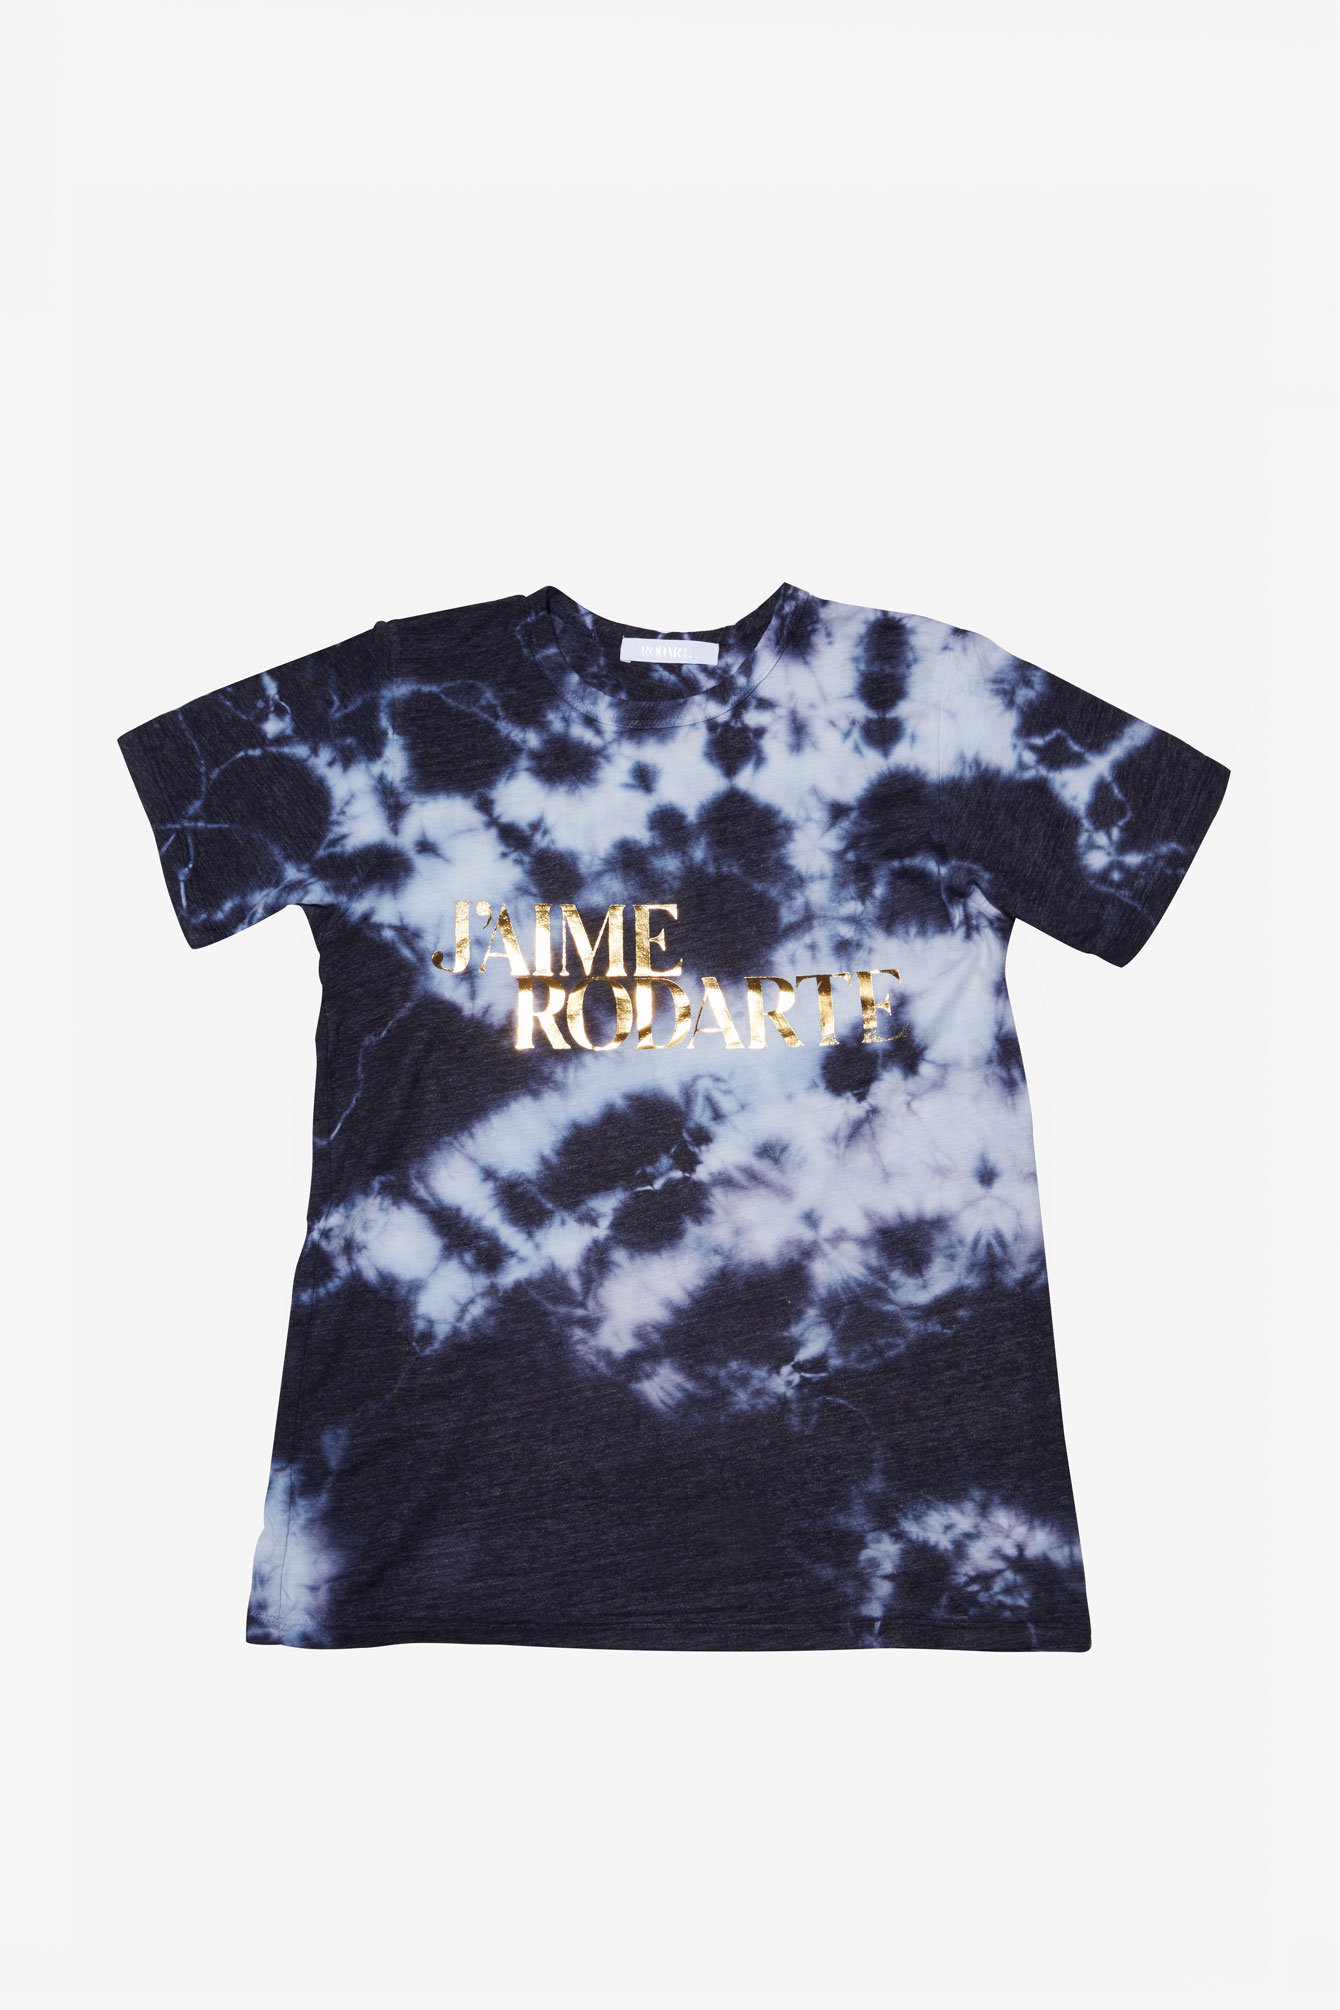 8eb948f50 Where To Buy White T Shirts For Tie Dye